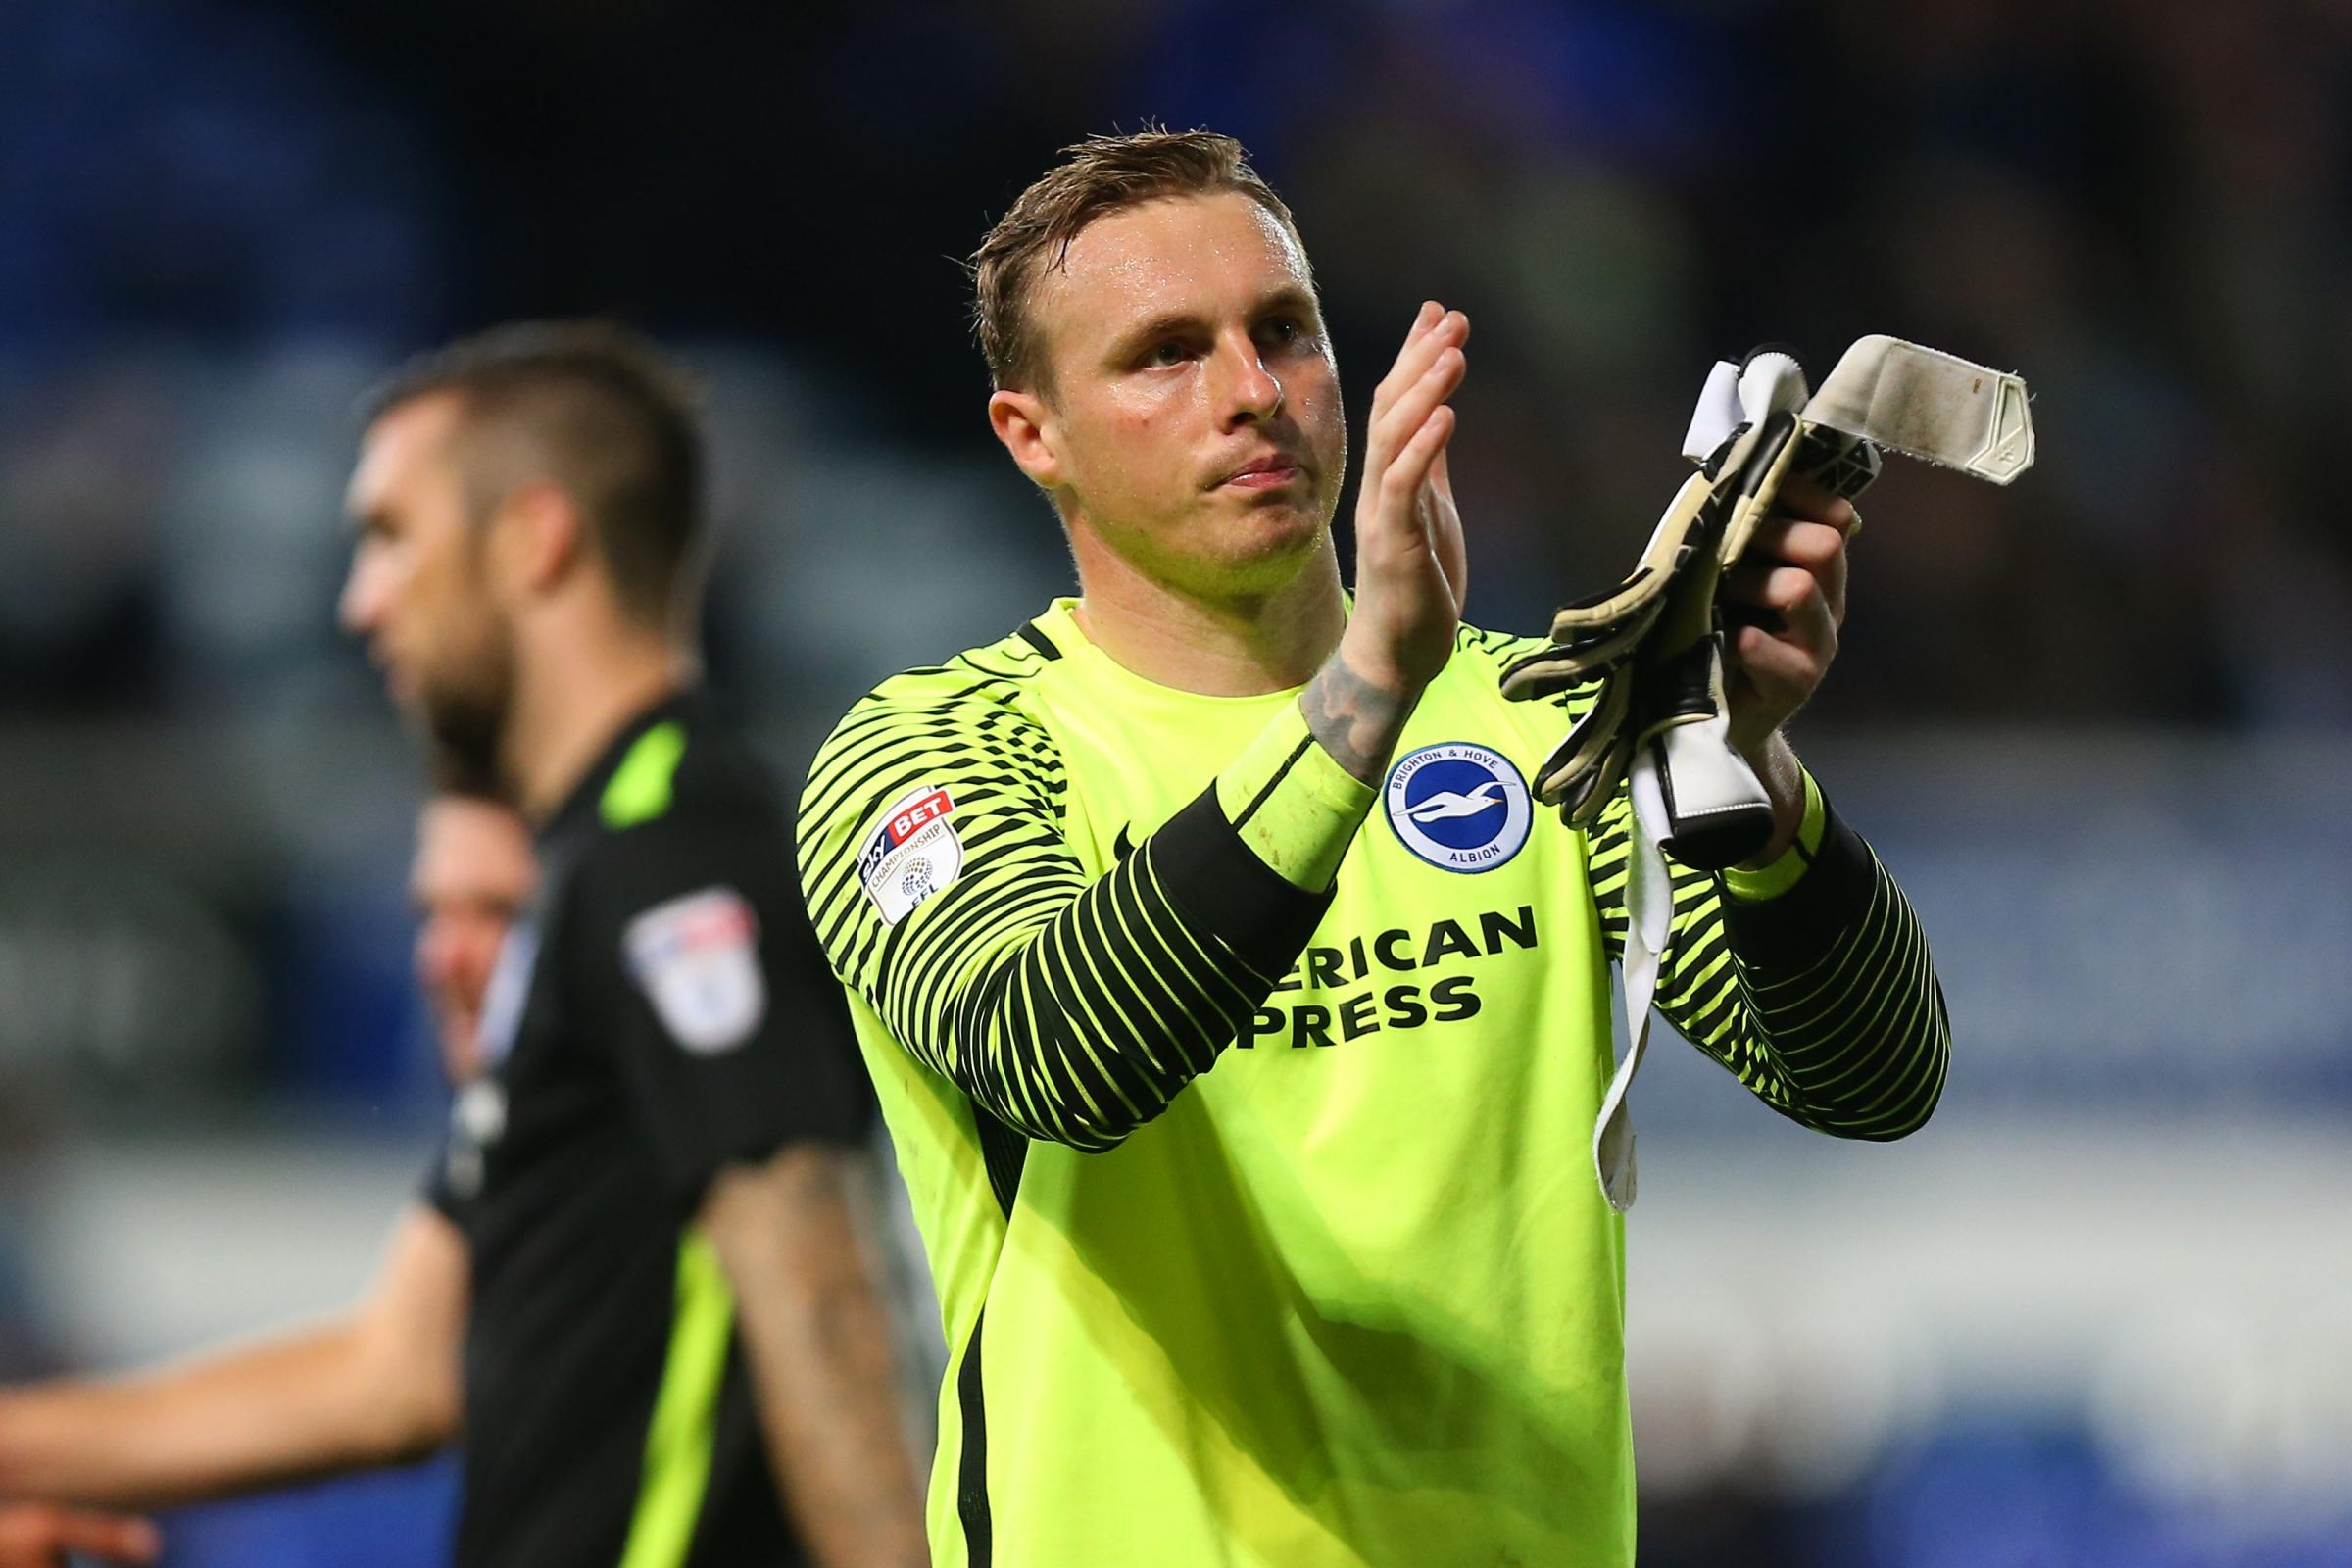 David Stockdale clapping his hands after a game